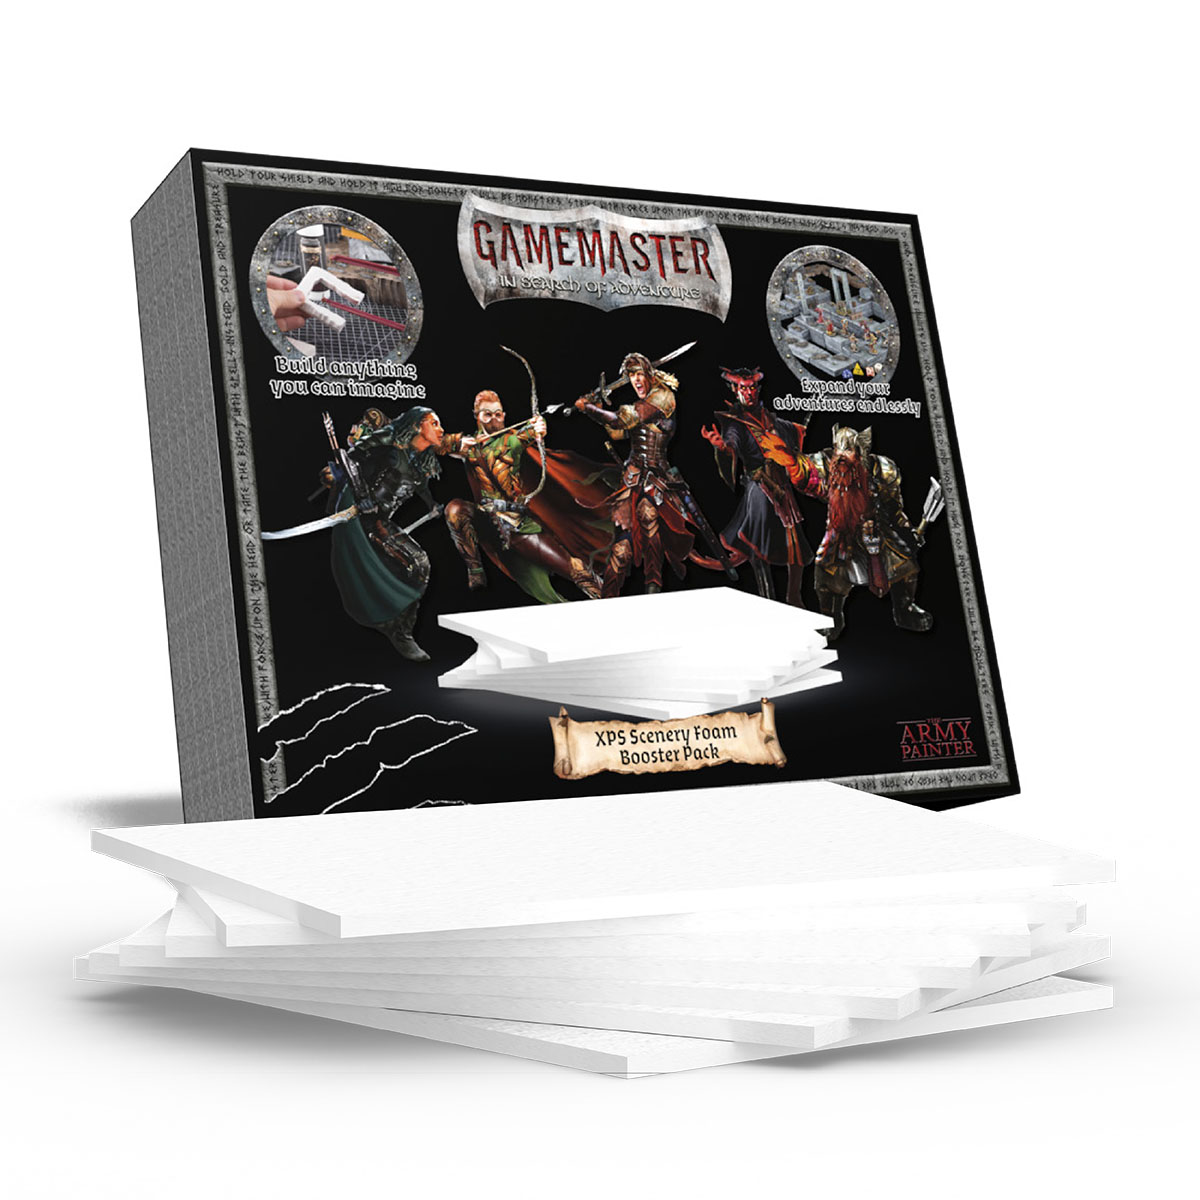 GAMEMASTER XPS Scenery Foam Booster Pack, GM1003